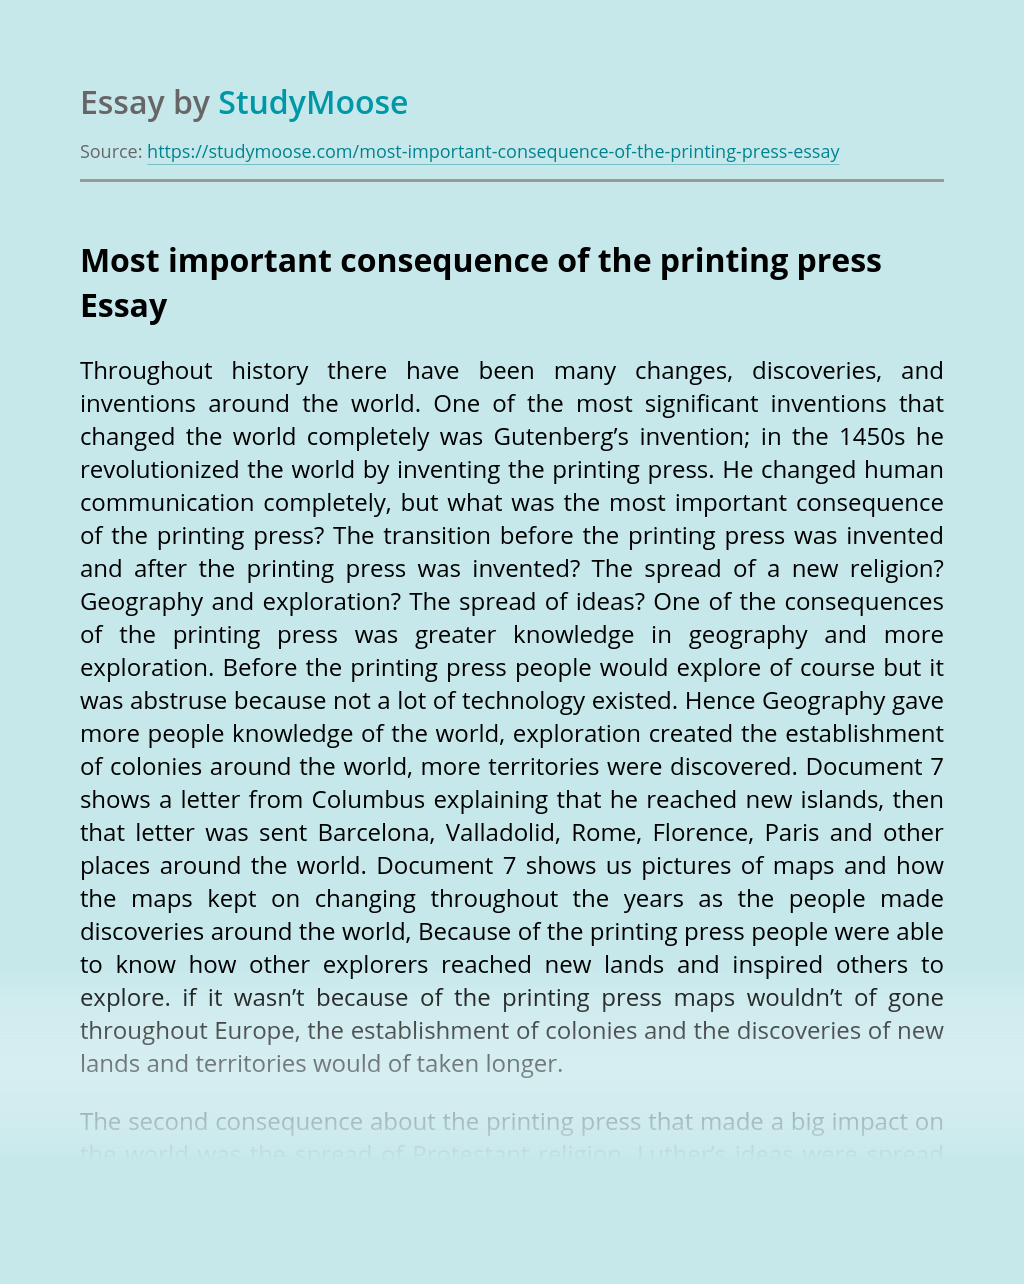 Most important consequence of the printing press